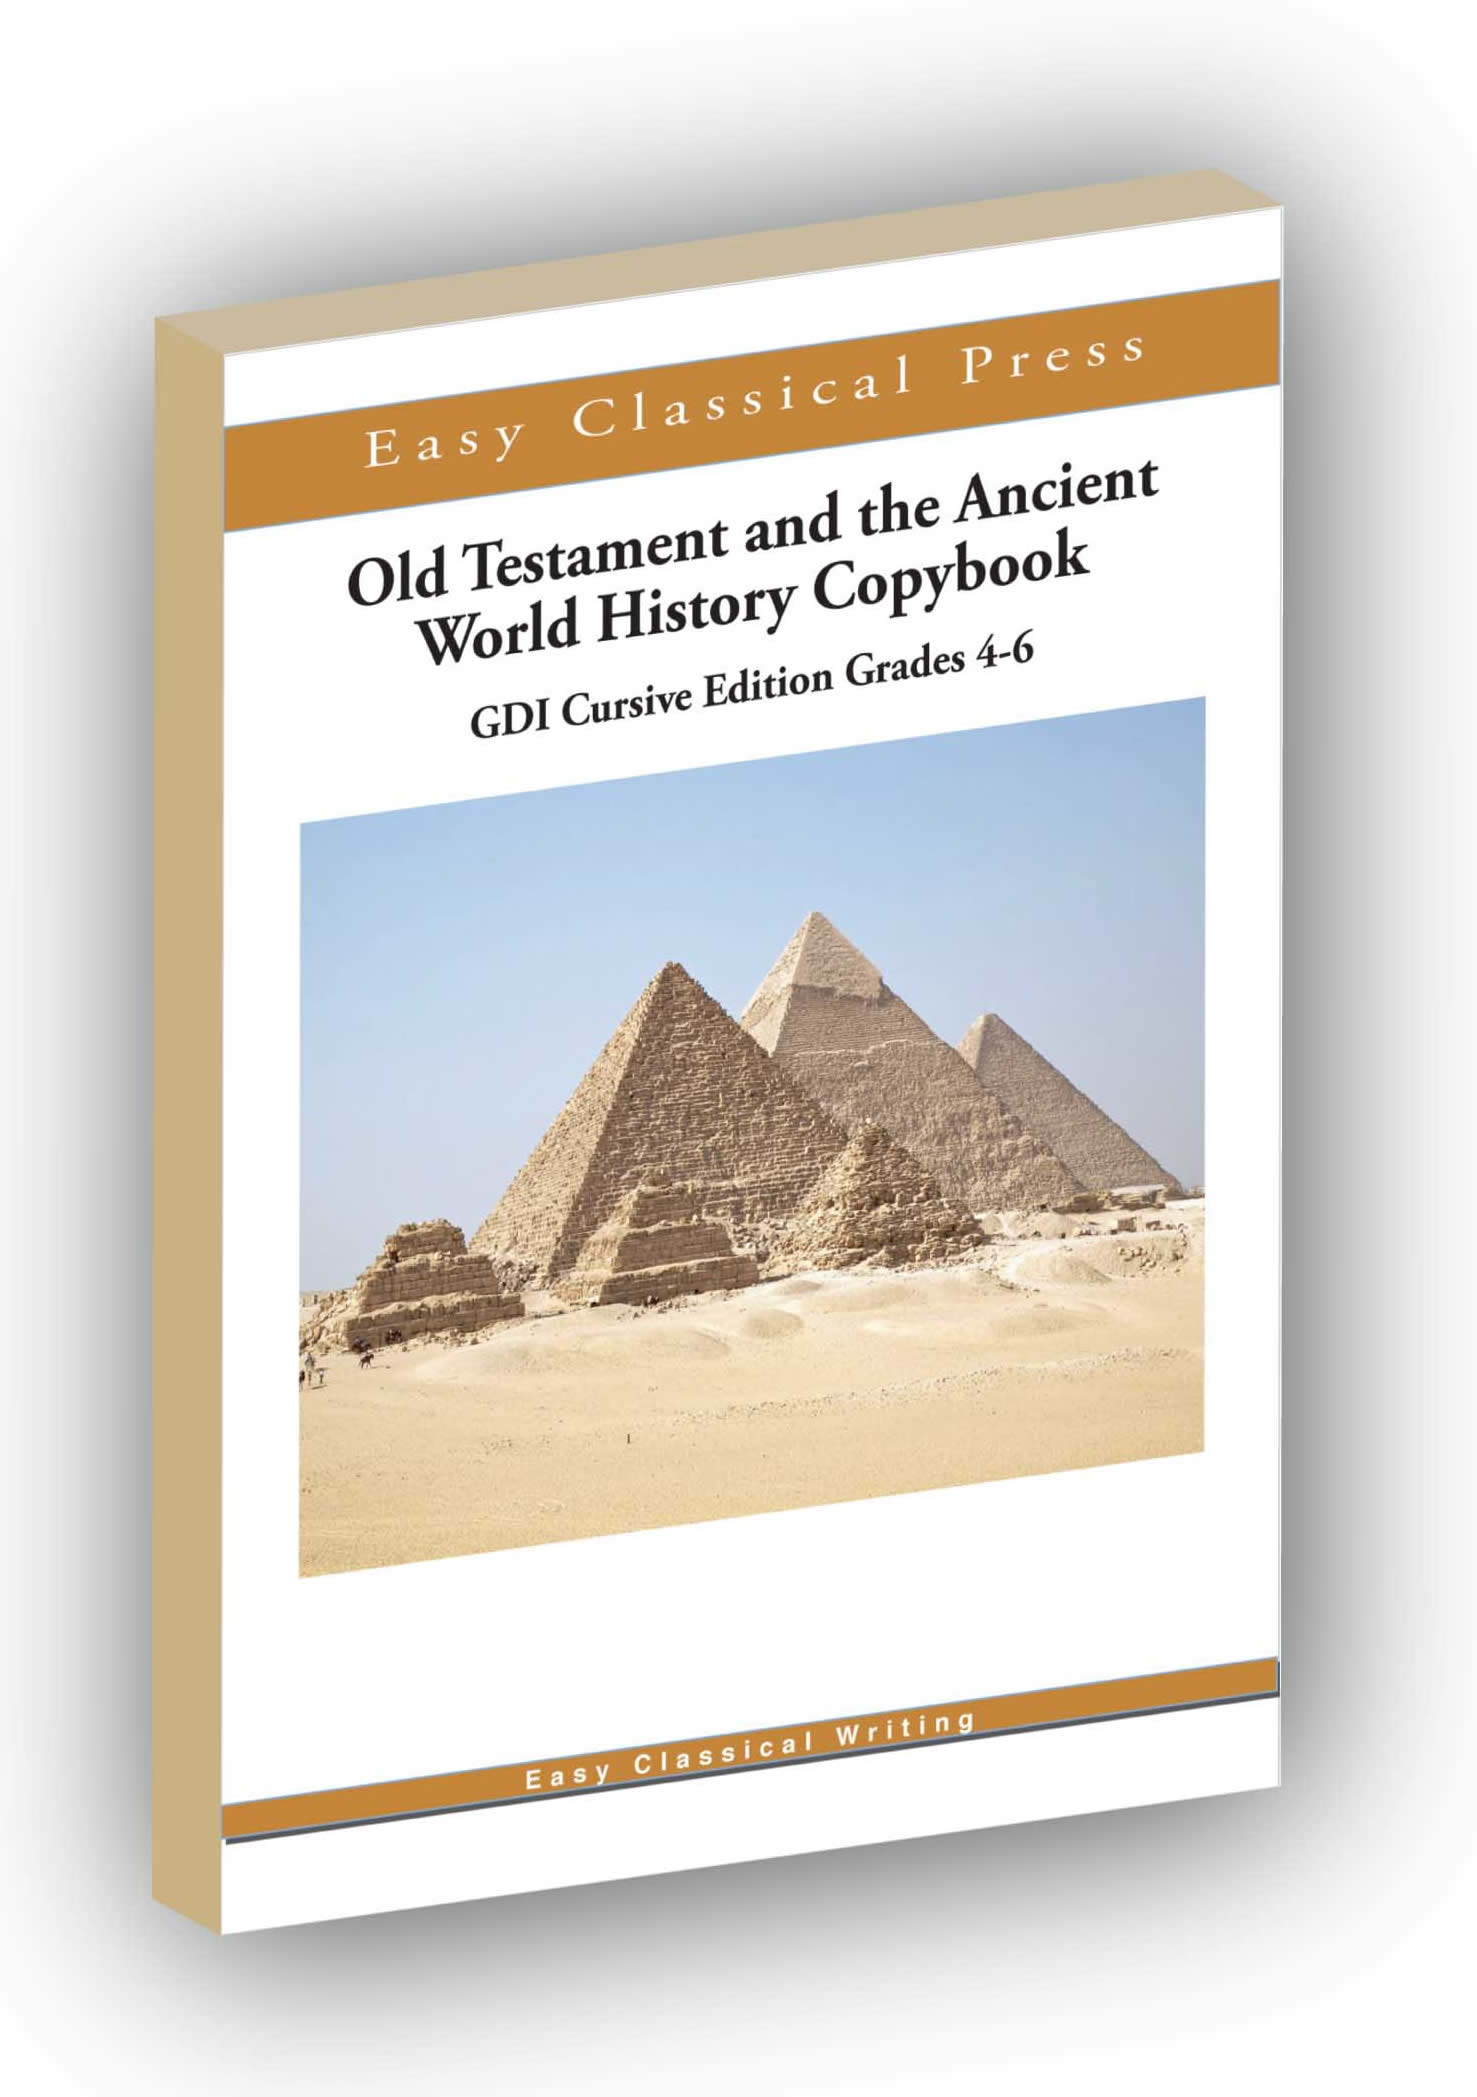 OT and the Ancient World History Copybook (4-6)